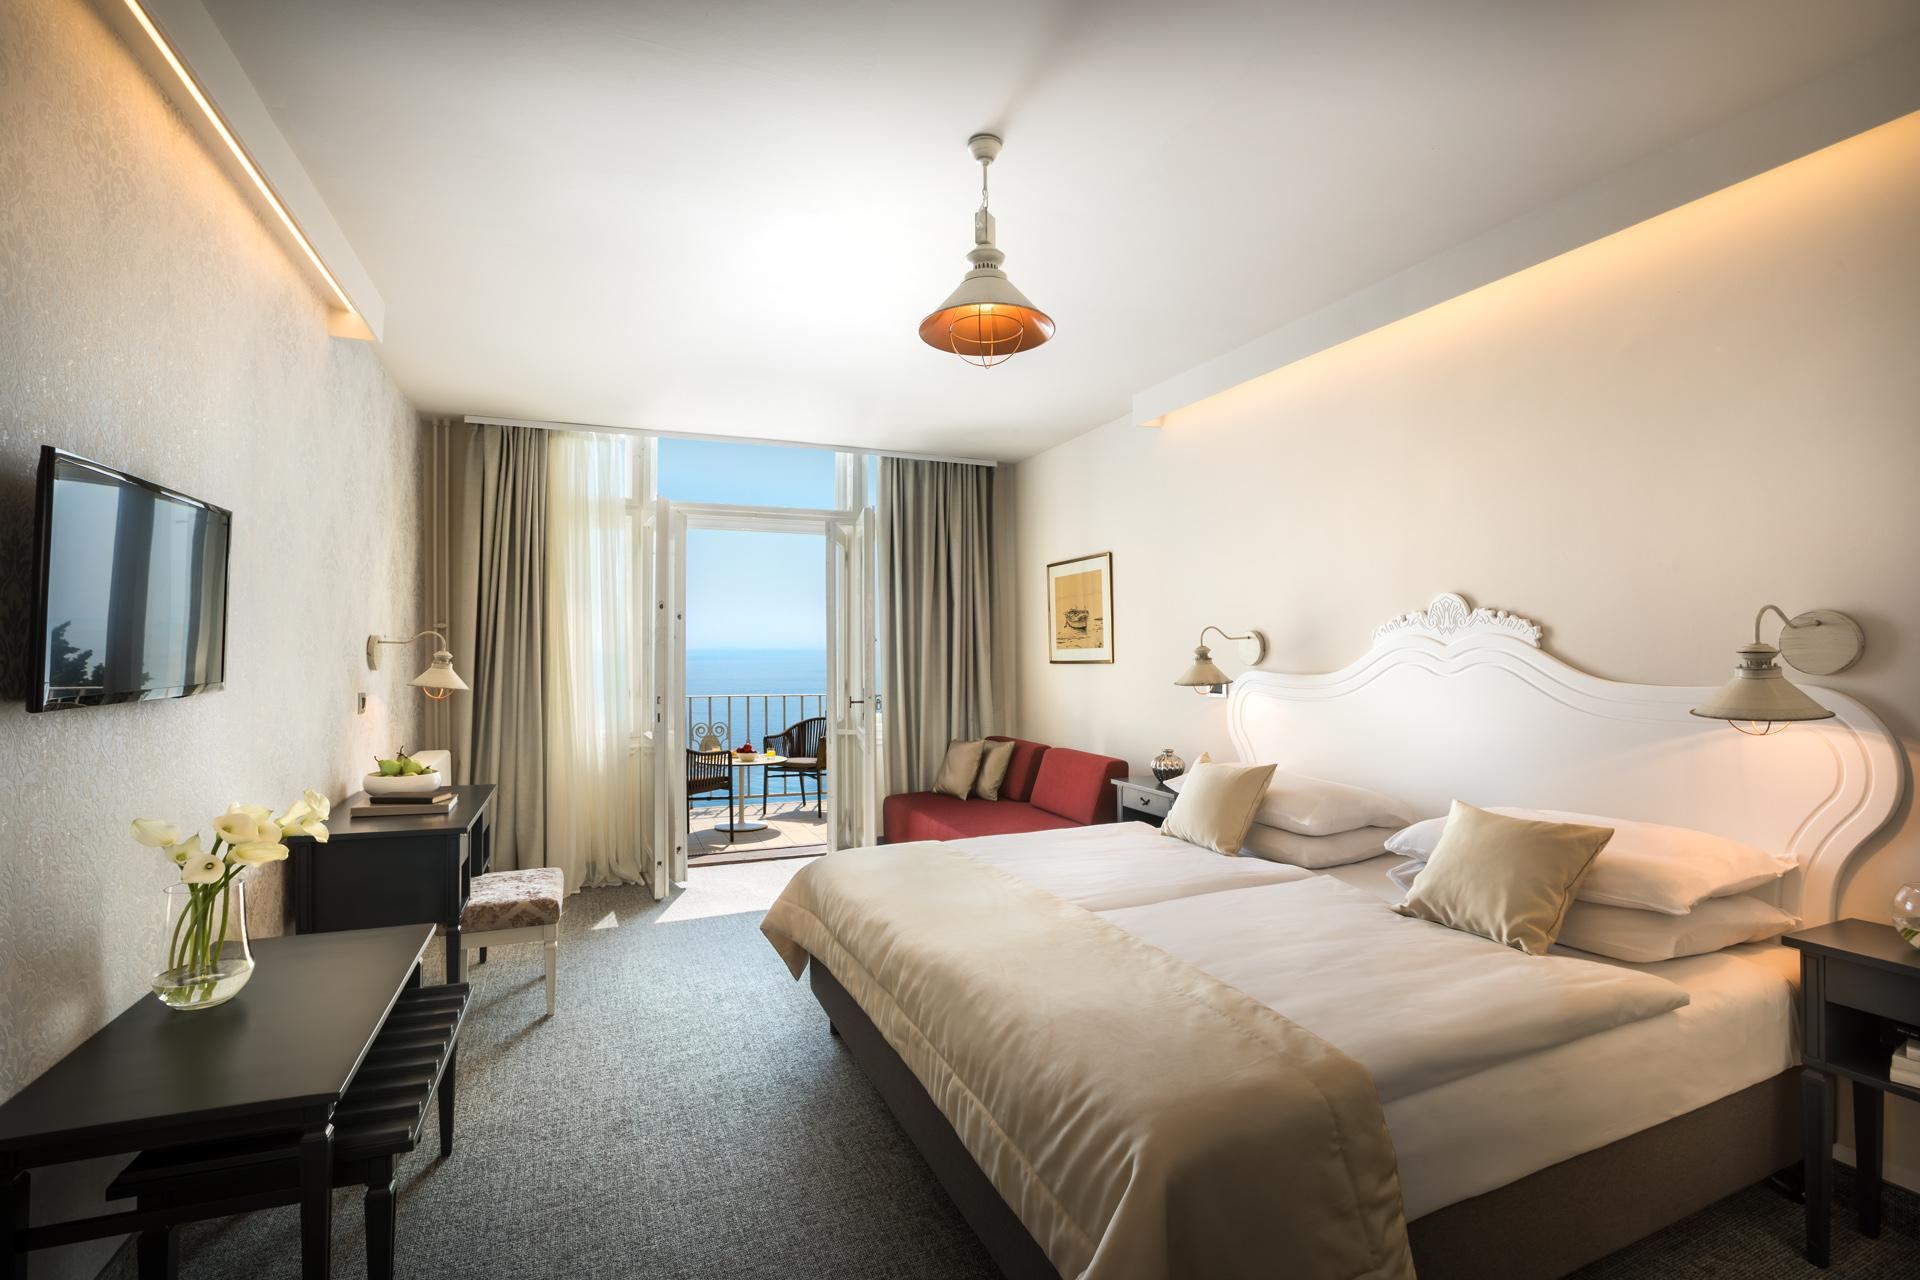 Smart Selection Hotel Lungomare Opatija